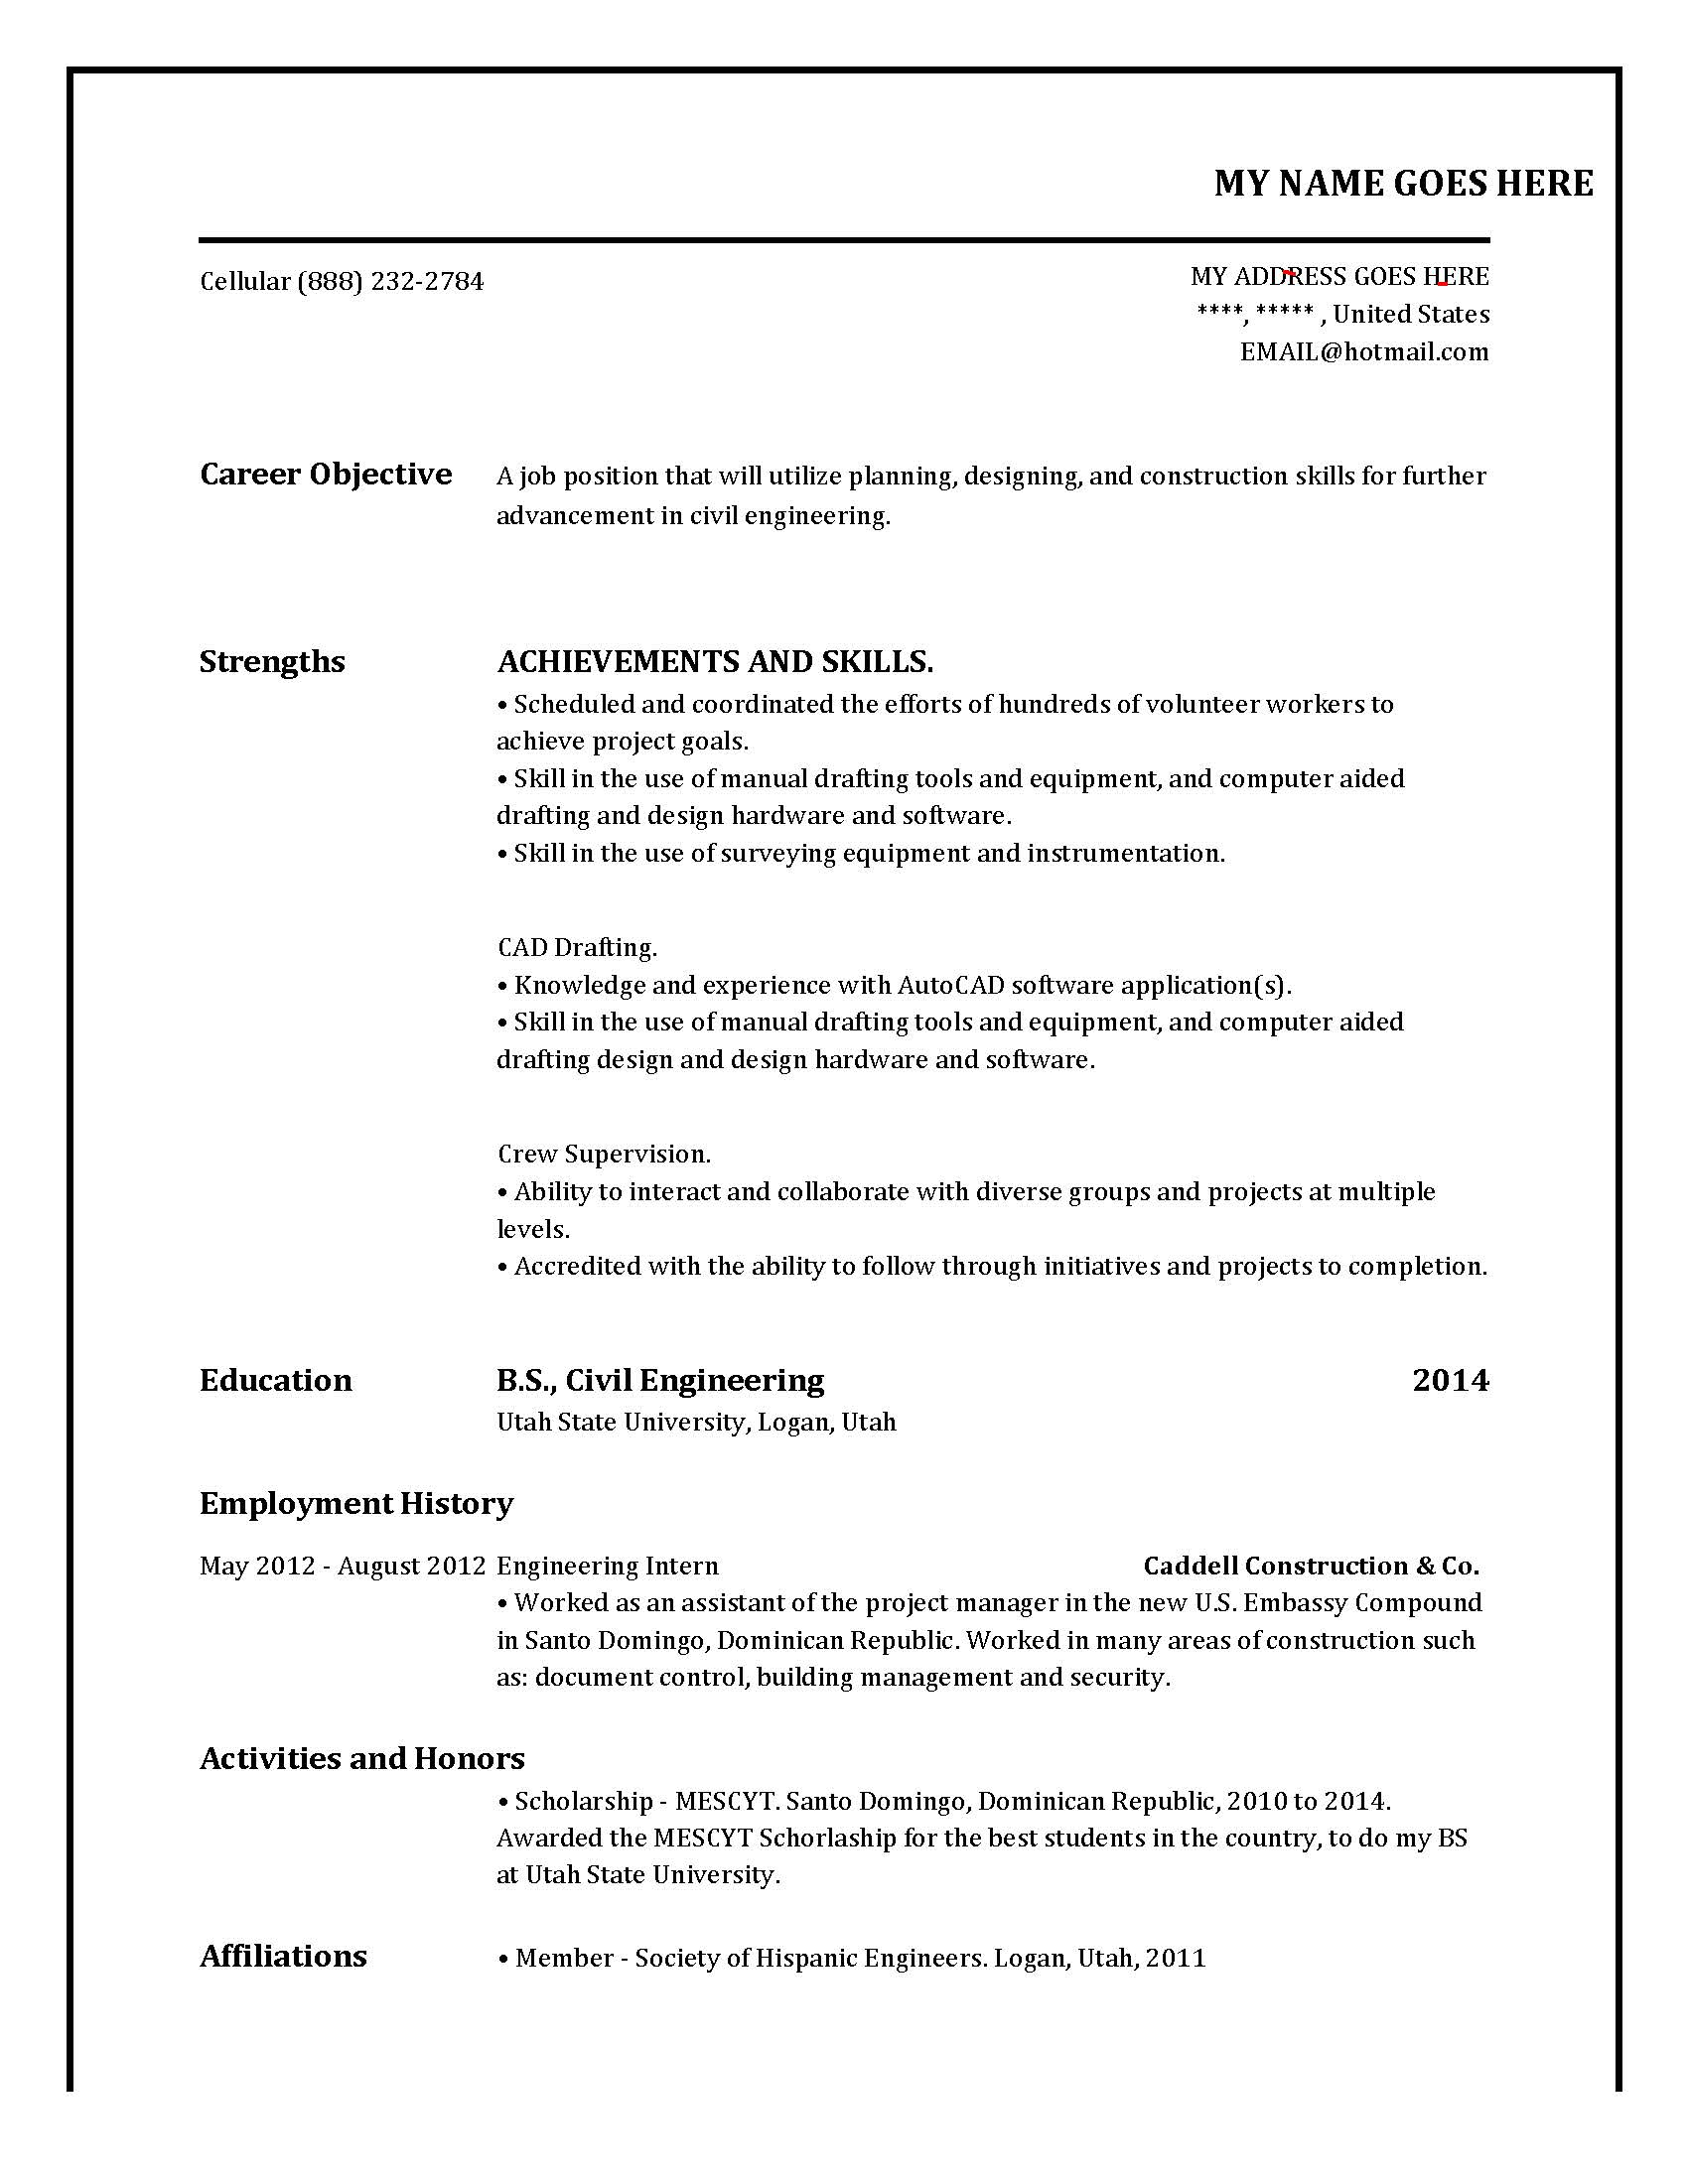 build my resume online tk category curriculum vitae - Creating A Resume For Free